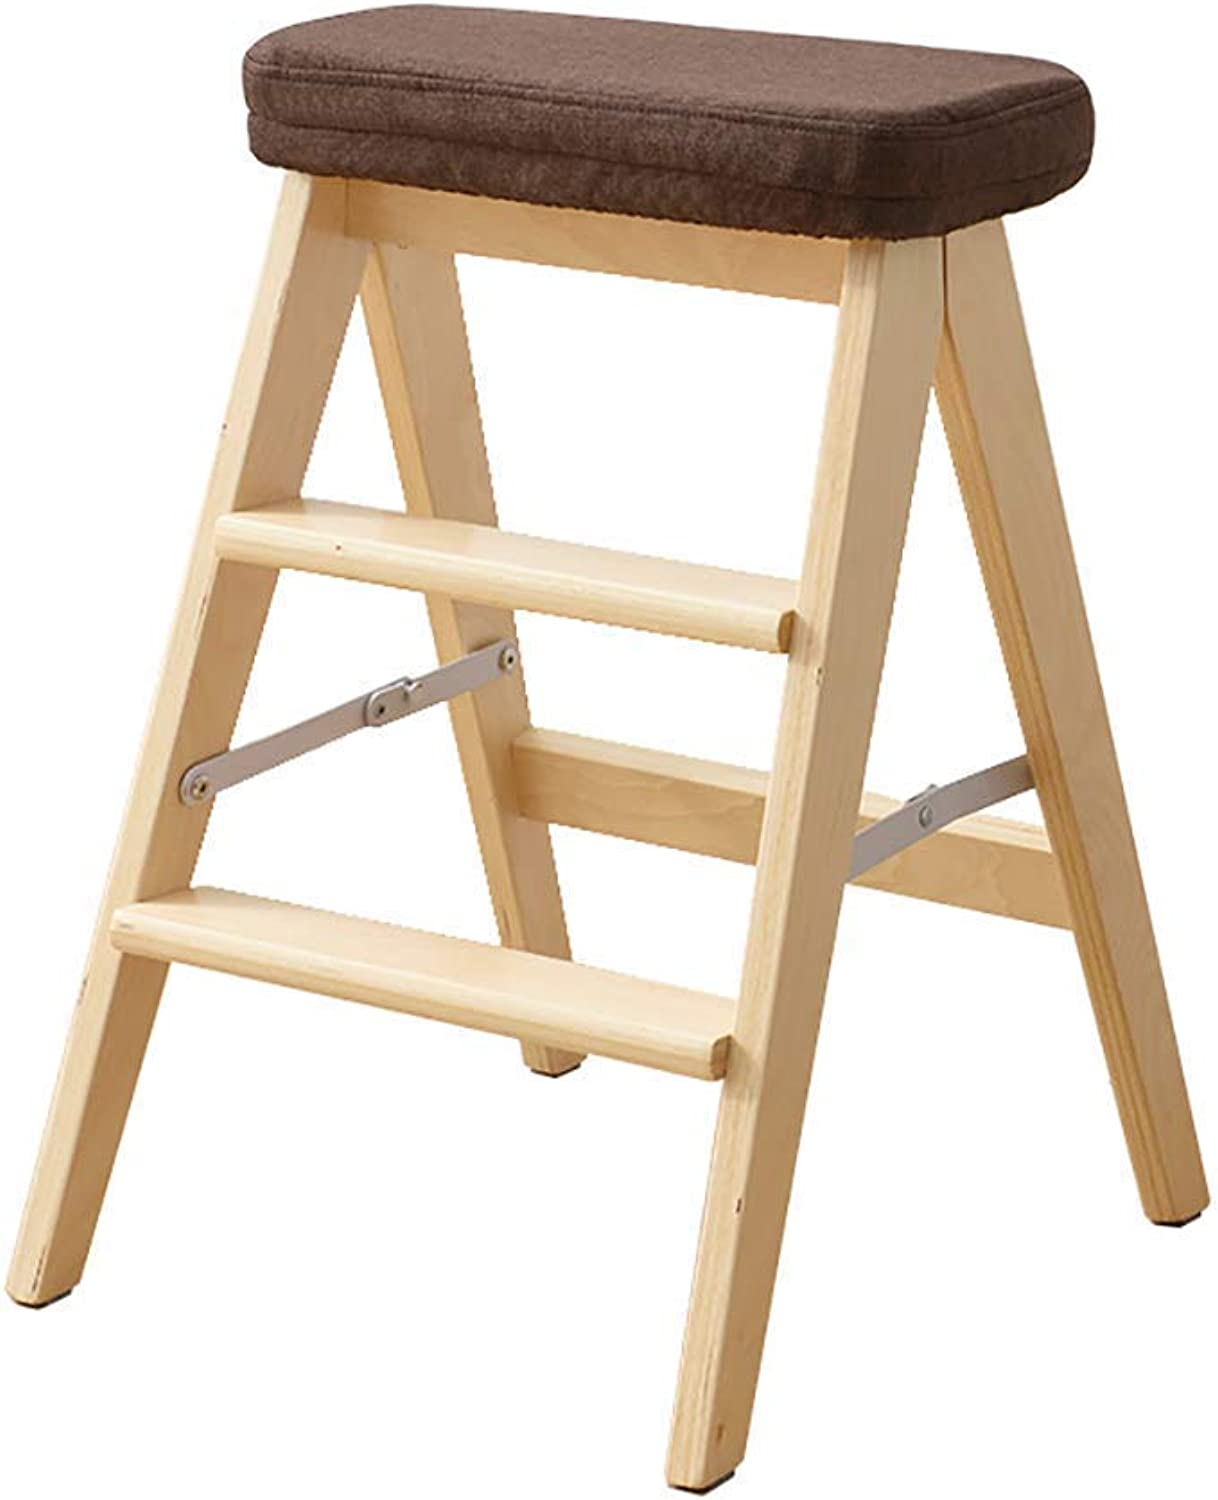 D-Z Chair Stool Folding Ladder Step Stool Portable Ladder Stool Multipurpose Solid Wood Kitchen Stool Household Climbing Wooden Stool, Stool 5, a